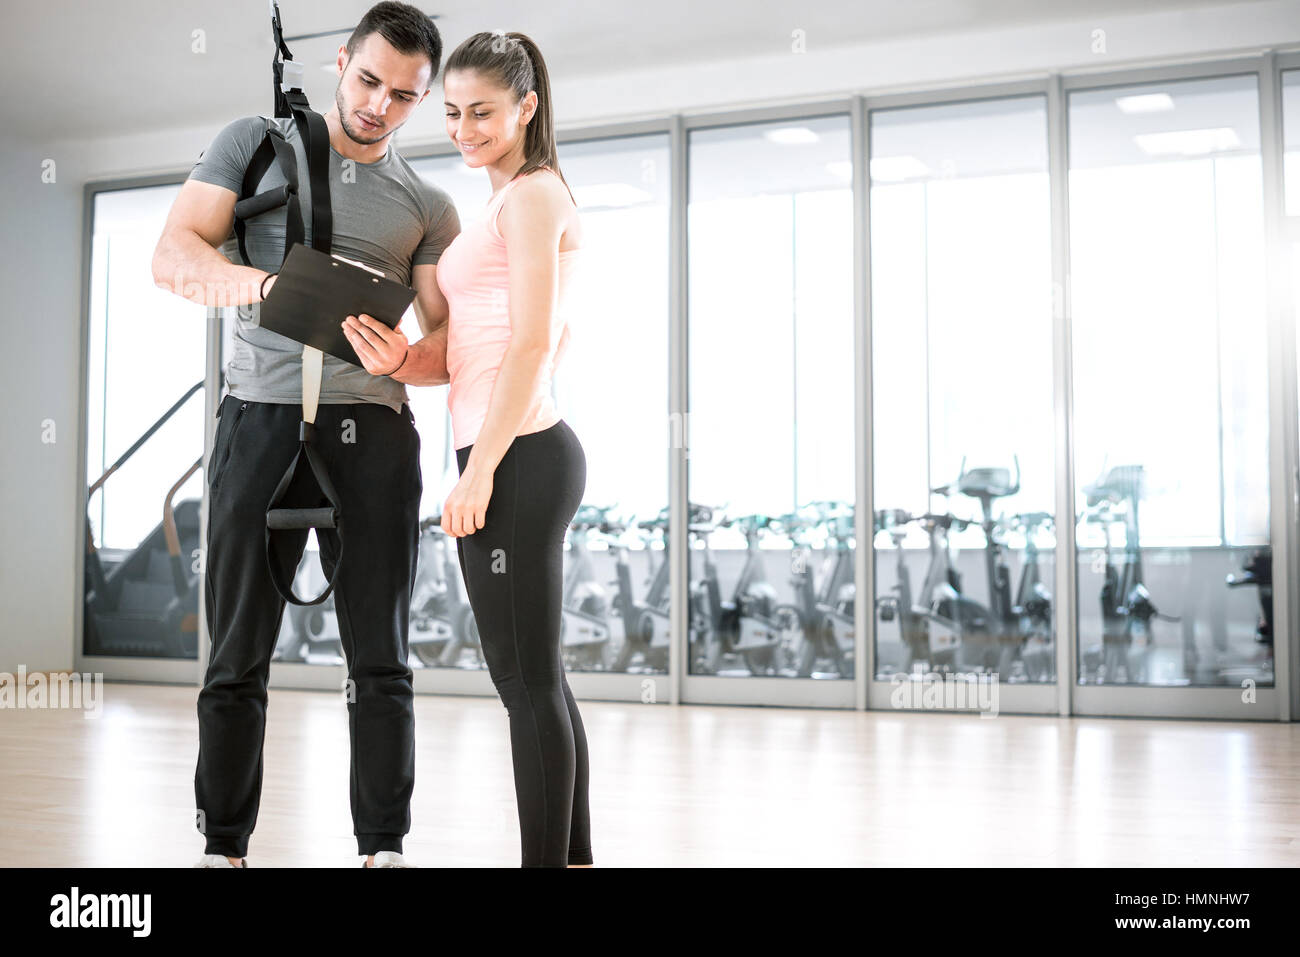 Personal trainer showing result of training plan to his female young client with suspension rope over shoulder. - Stock Image